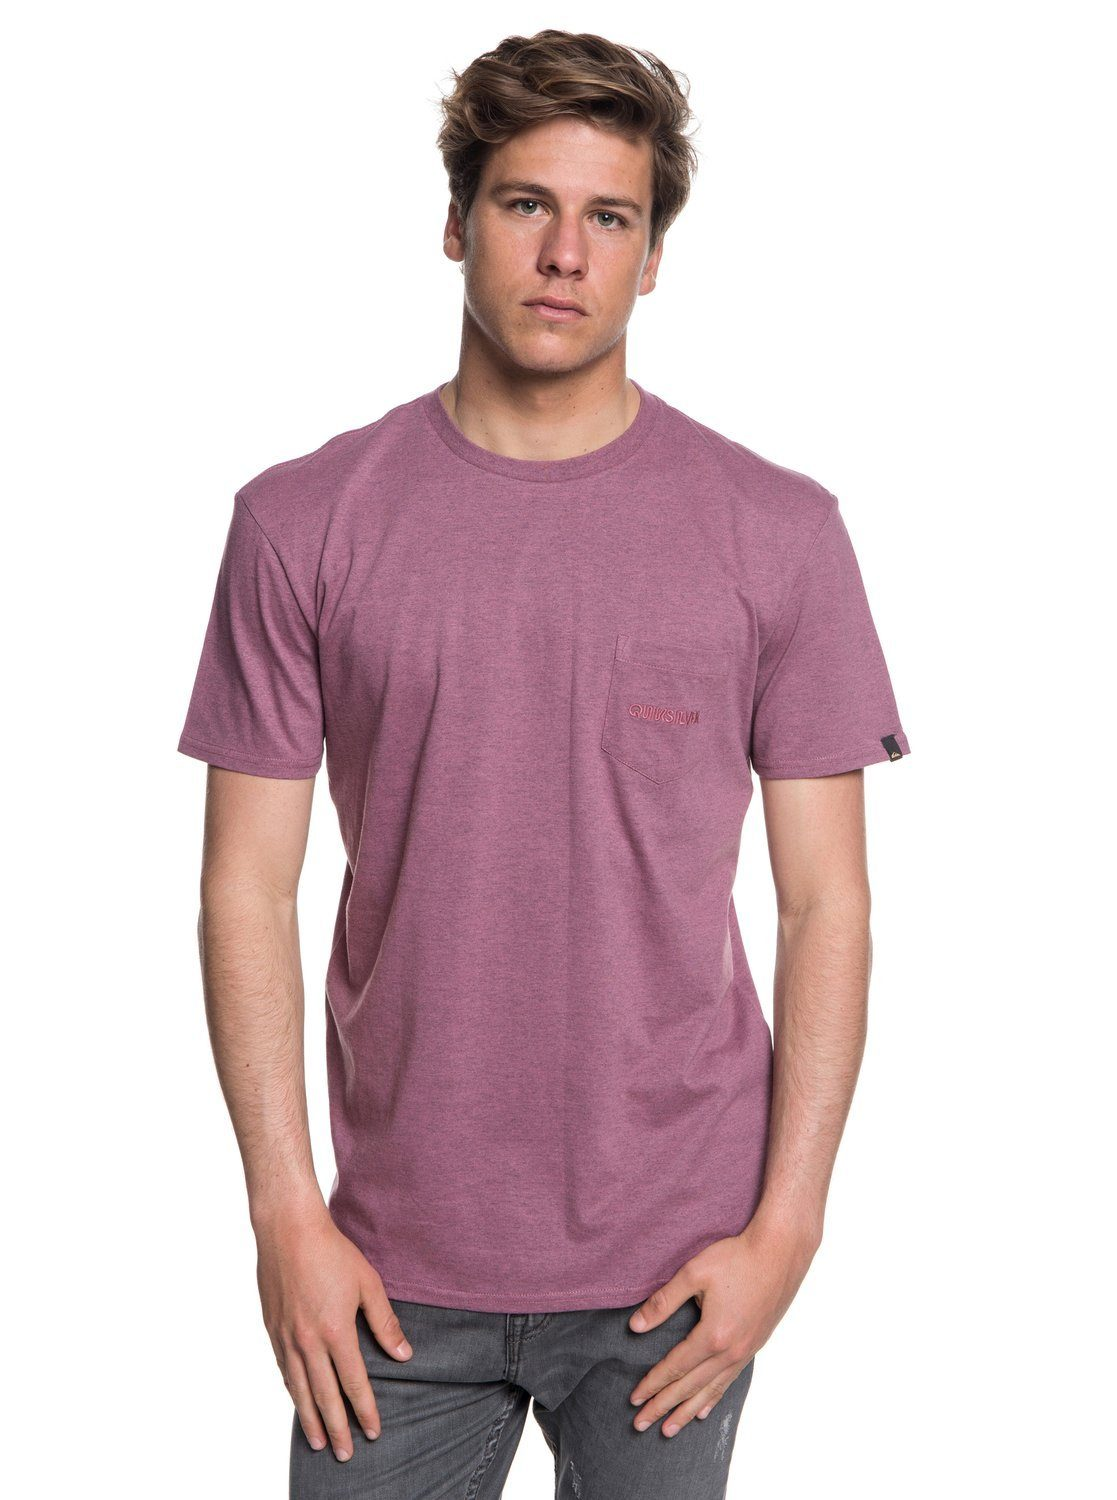 Quiksilver T-Shirt »The Stitch Up«